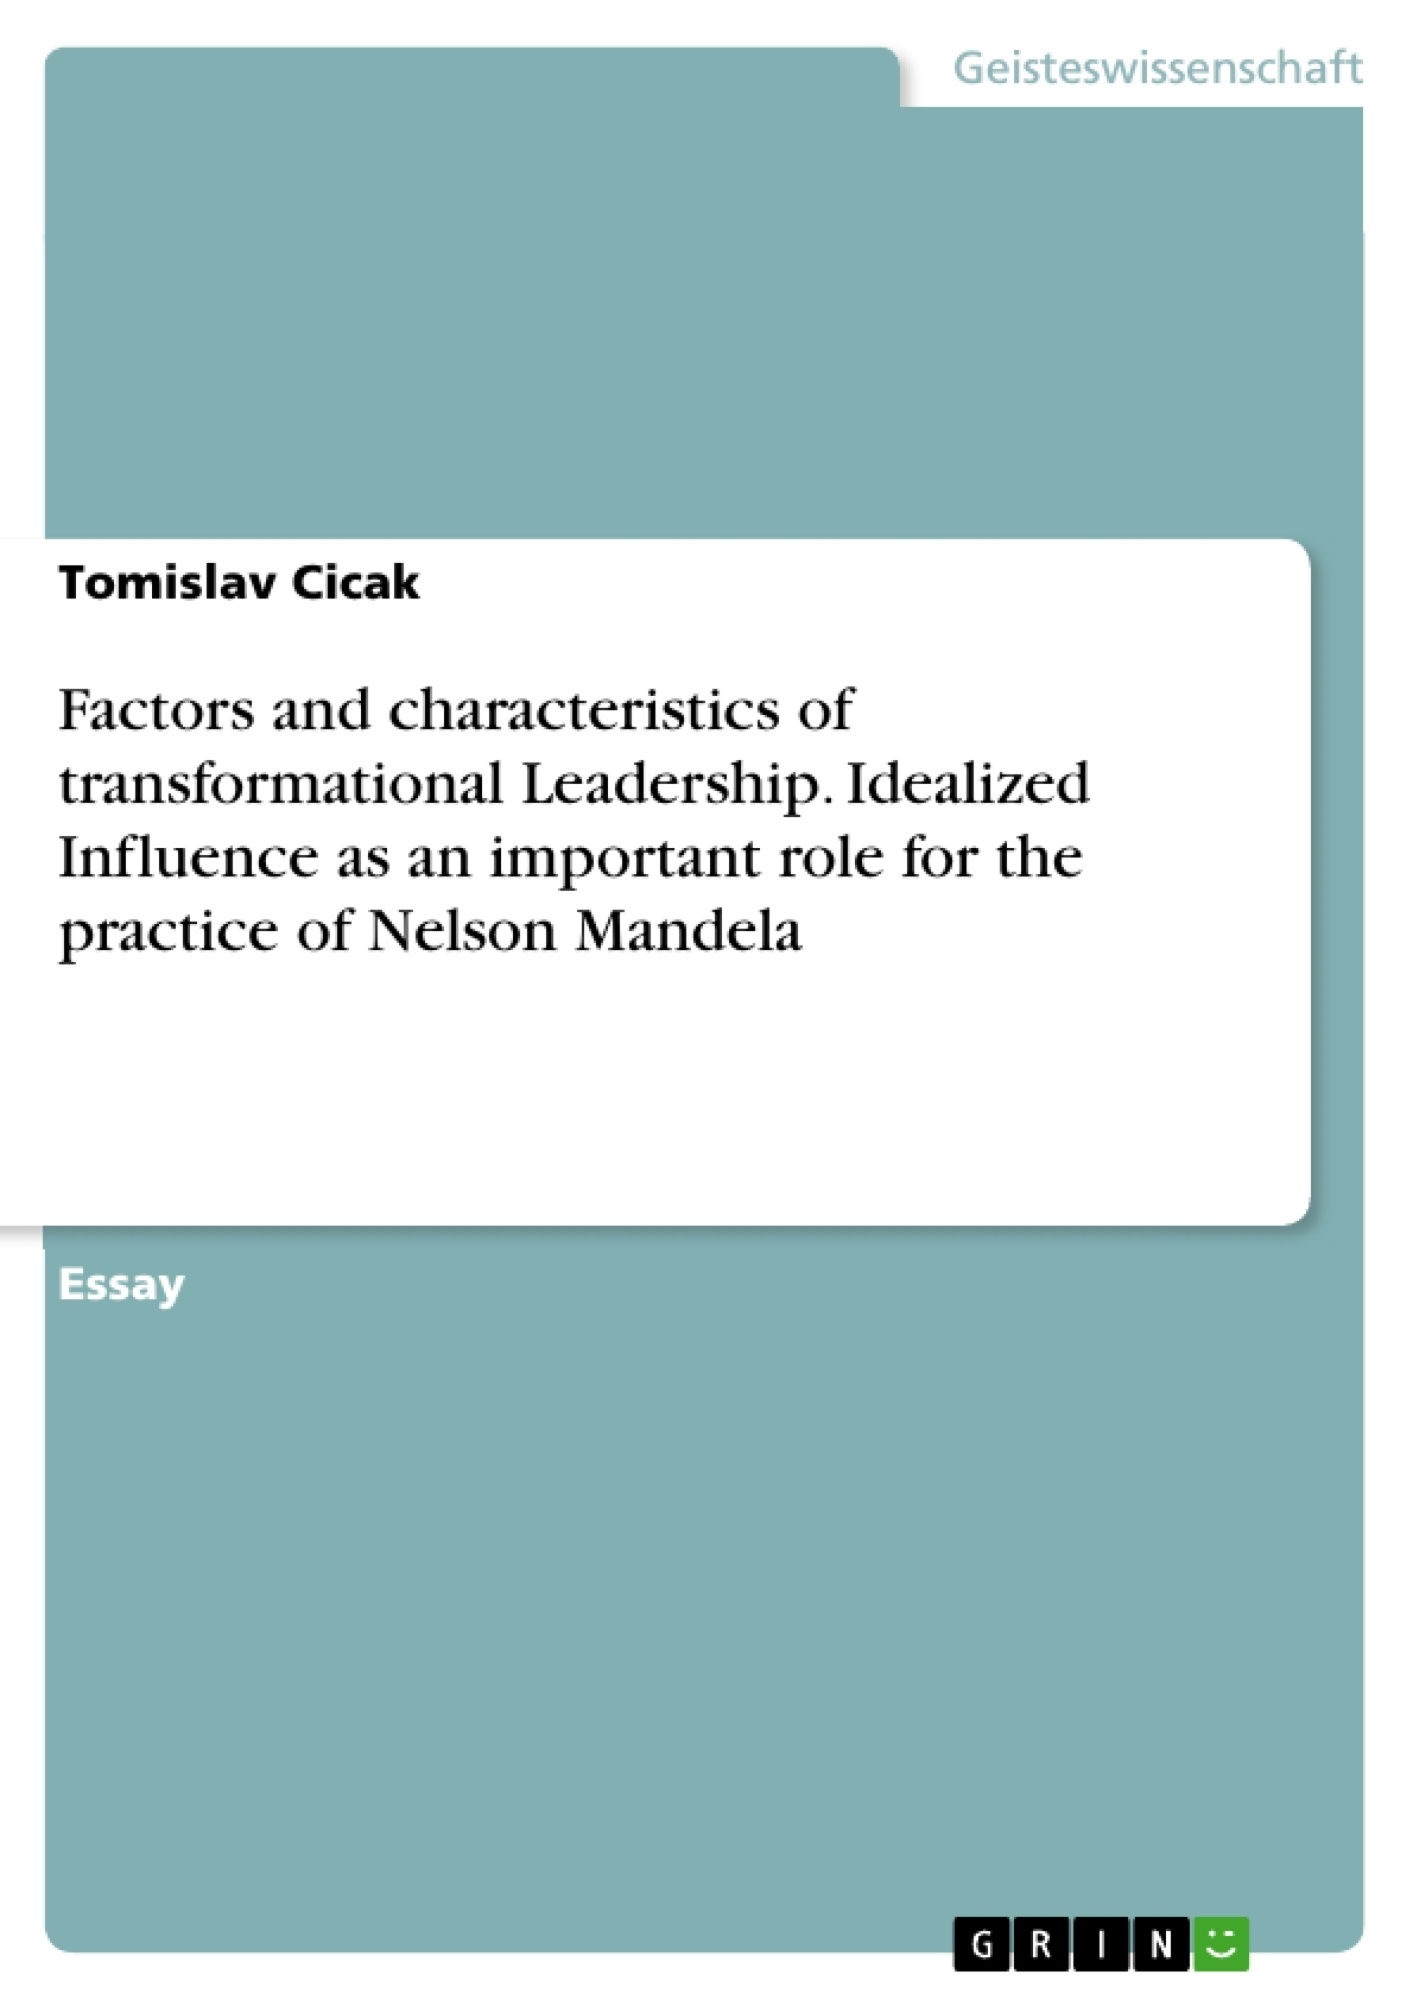 Titel: Factors and characteristics of transformational Leadership. Idealized Influence as an important role for the practice of Nelson Mandela